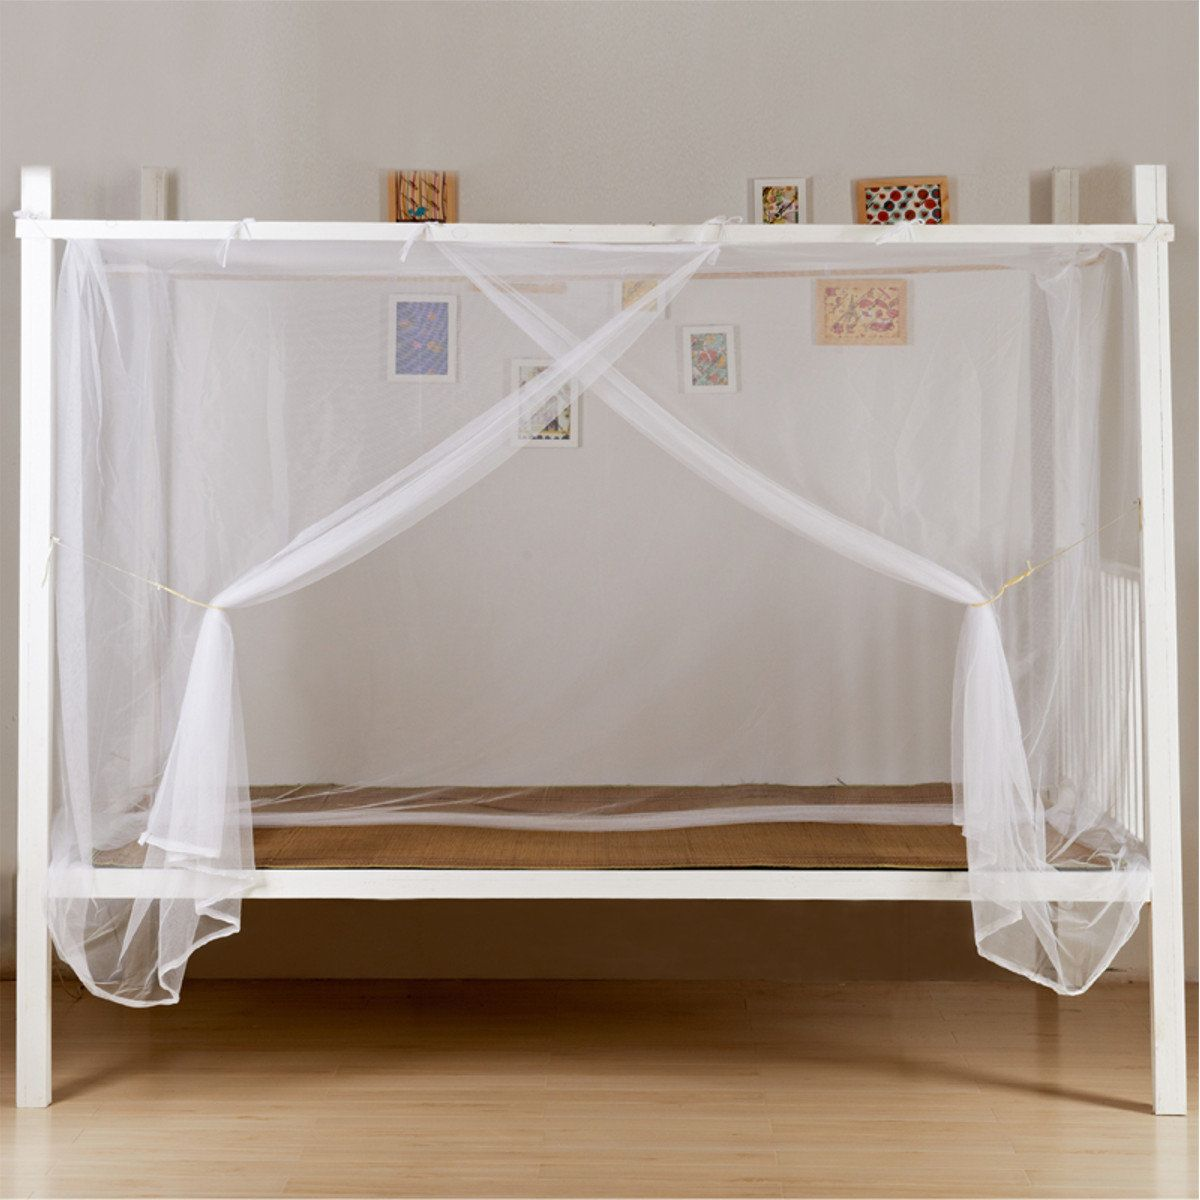 Mosquito Net Bed Canopy Dome Netting Fly Insect Protection Bed Outdoor Curtain  sc 1 st  Pinterest & Mosquito Net Bed Canopy Dome Netting Fly Insect Protection Bed ...